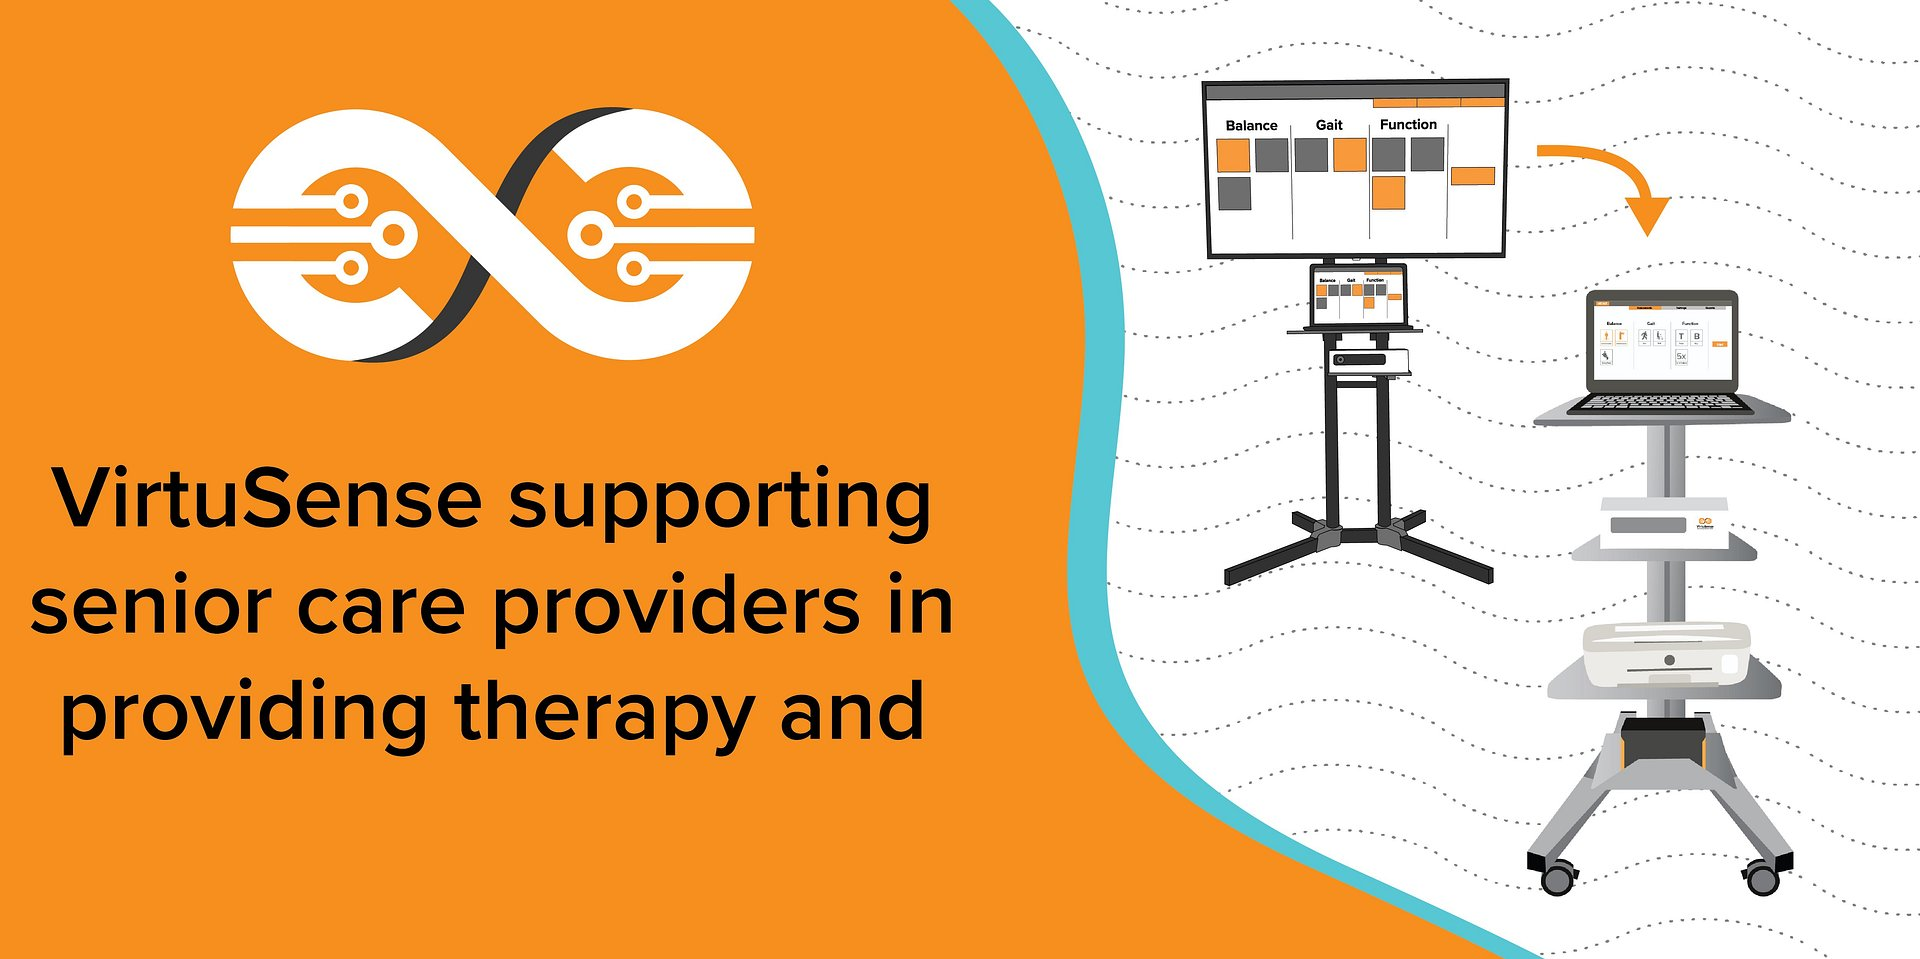 VirtuSense supporting senior care providers in providing therapy and wellness during COVID-19 pandemic